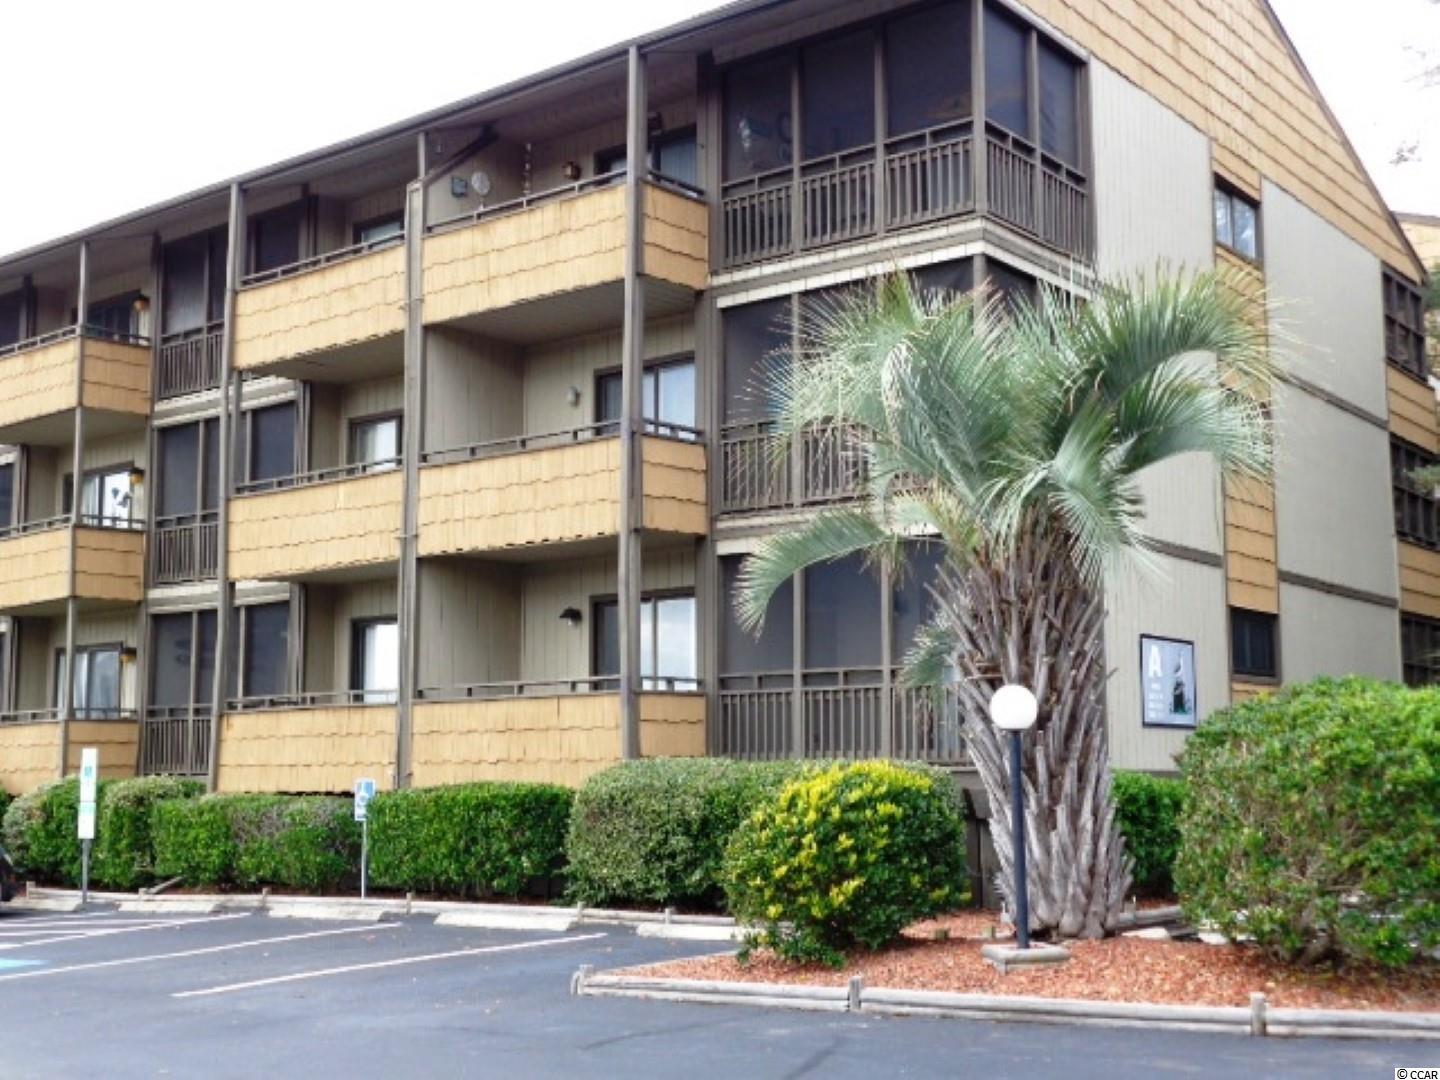 Location! Location! This 2 bedroom 1 1/2 bath fully furnished is located steps away from the beach.  Sit and relax on the screened in porch over looking a great marsh view and listen to the ocean. Head to the community pool and visit with neighbors or take advantage of the community grilling area.  Whether you are looking for a rental property or a vacation get-away, you won't want to miss this one...Schedule your showing today!  Without getting in your car, you can enjoy some of the widest beaches on the East Coast, music at the popular Ocean Annie's Beach Bar across the street on the ocean, eating at many restaurants within walking distance. You are just minutes away from Tanger Outlet, Barefoot Landing, Broadway at the Beach, and the popular Highway 22 that takes you to North or South Myrtle Beach without much traffic. Square footage is approximate and not guaranteed. Buyer is responsible for verification.